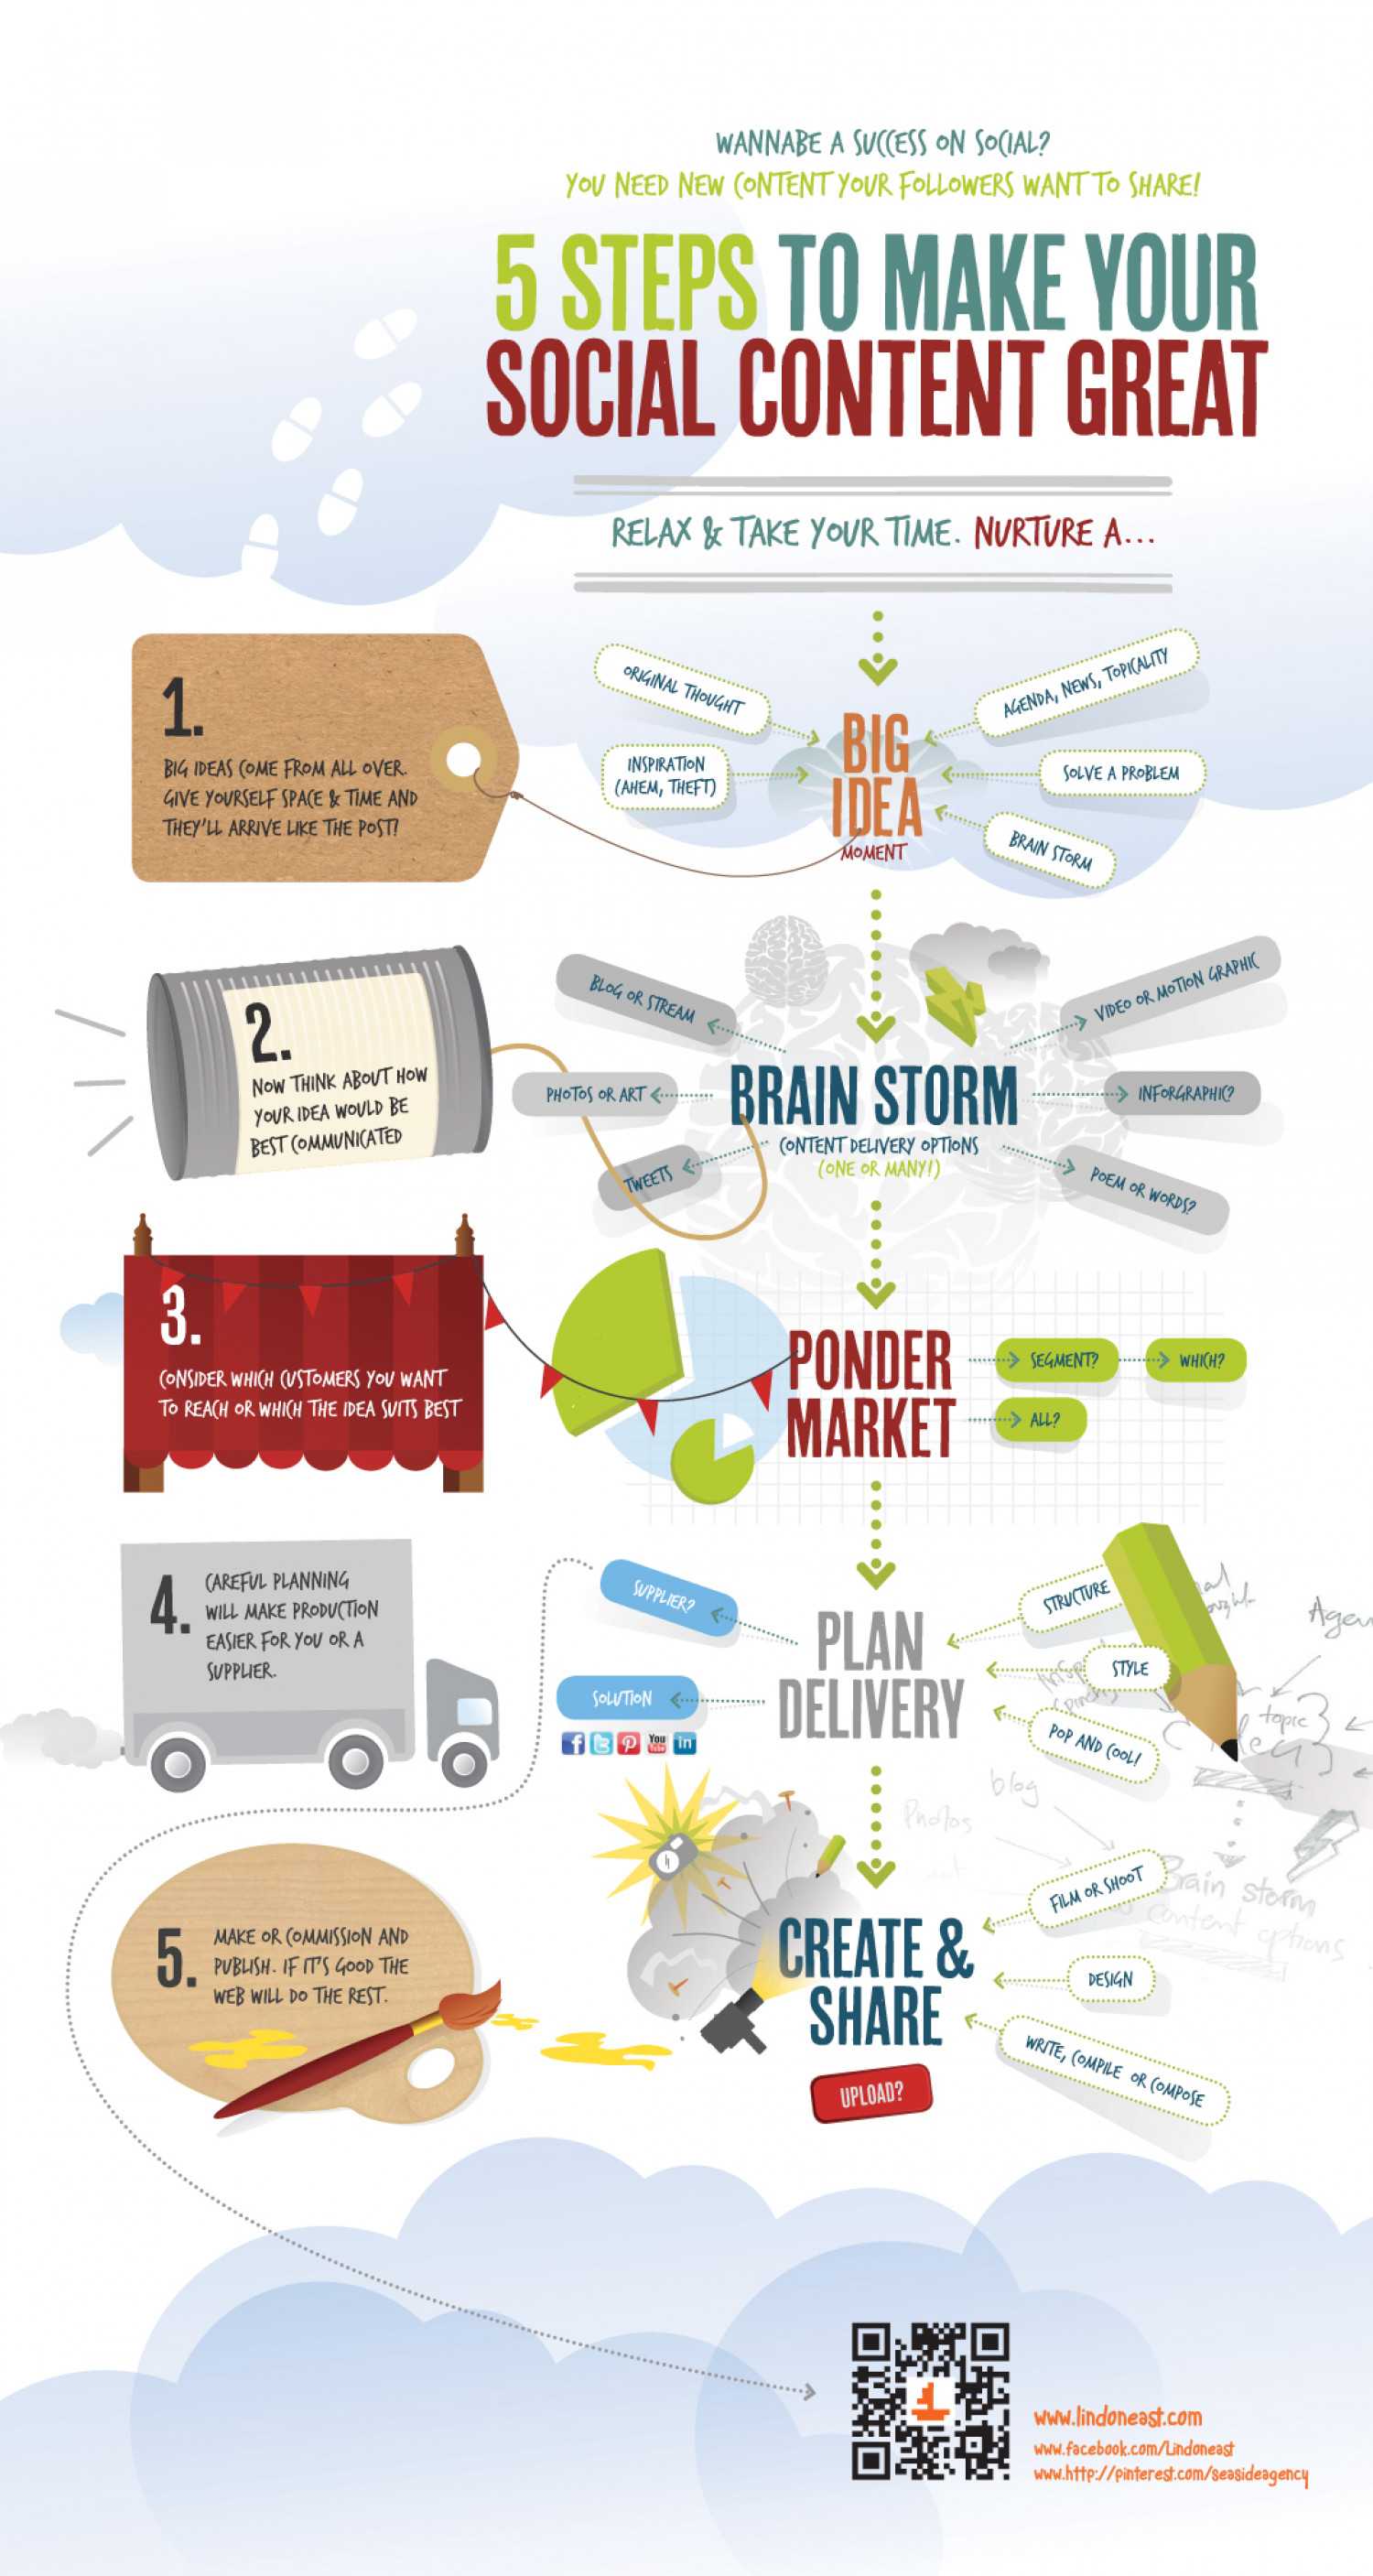 Tips to deliver great social content Infographic